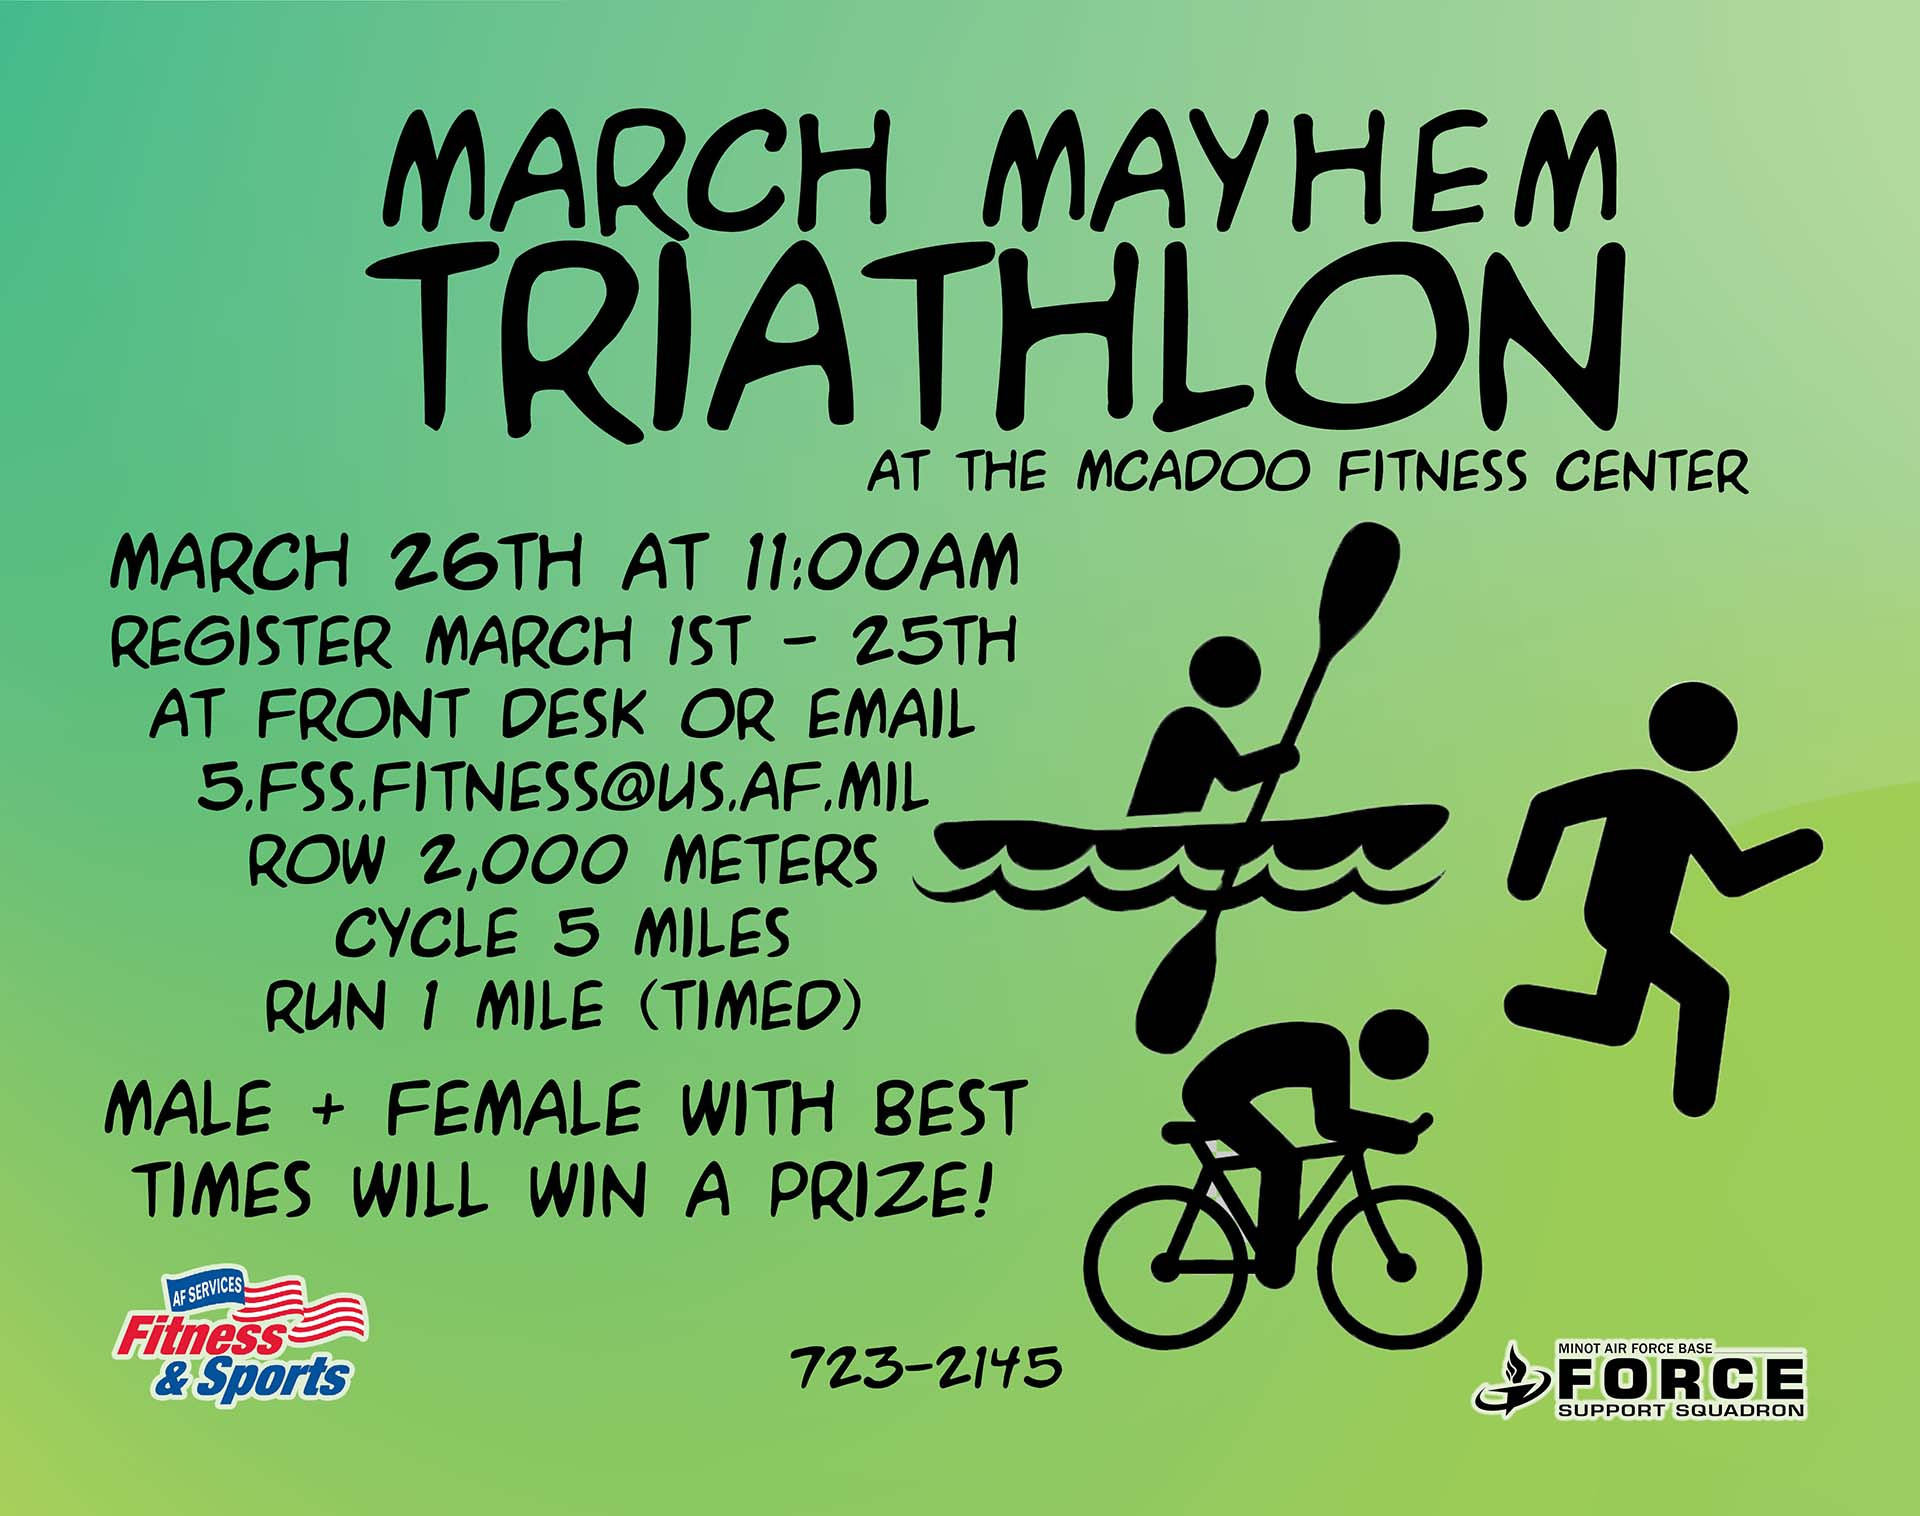 Registration Begins: March Mayhem Triathlon